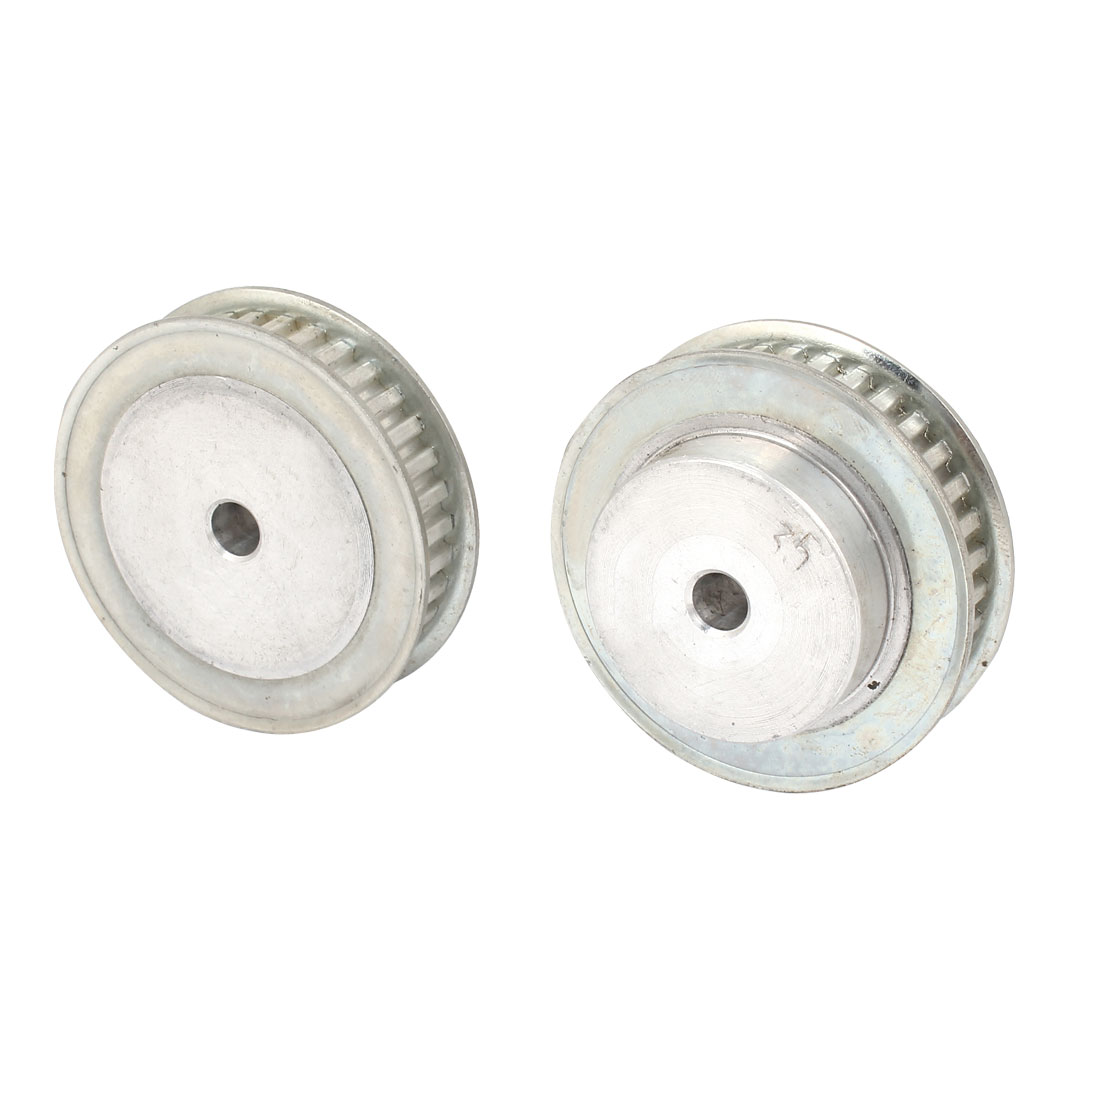 2 Pcs Stainless Steel XL Type 35T 6mm Pitch 8mm Diameter Bore Timing Belt Pulley